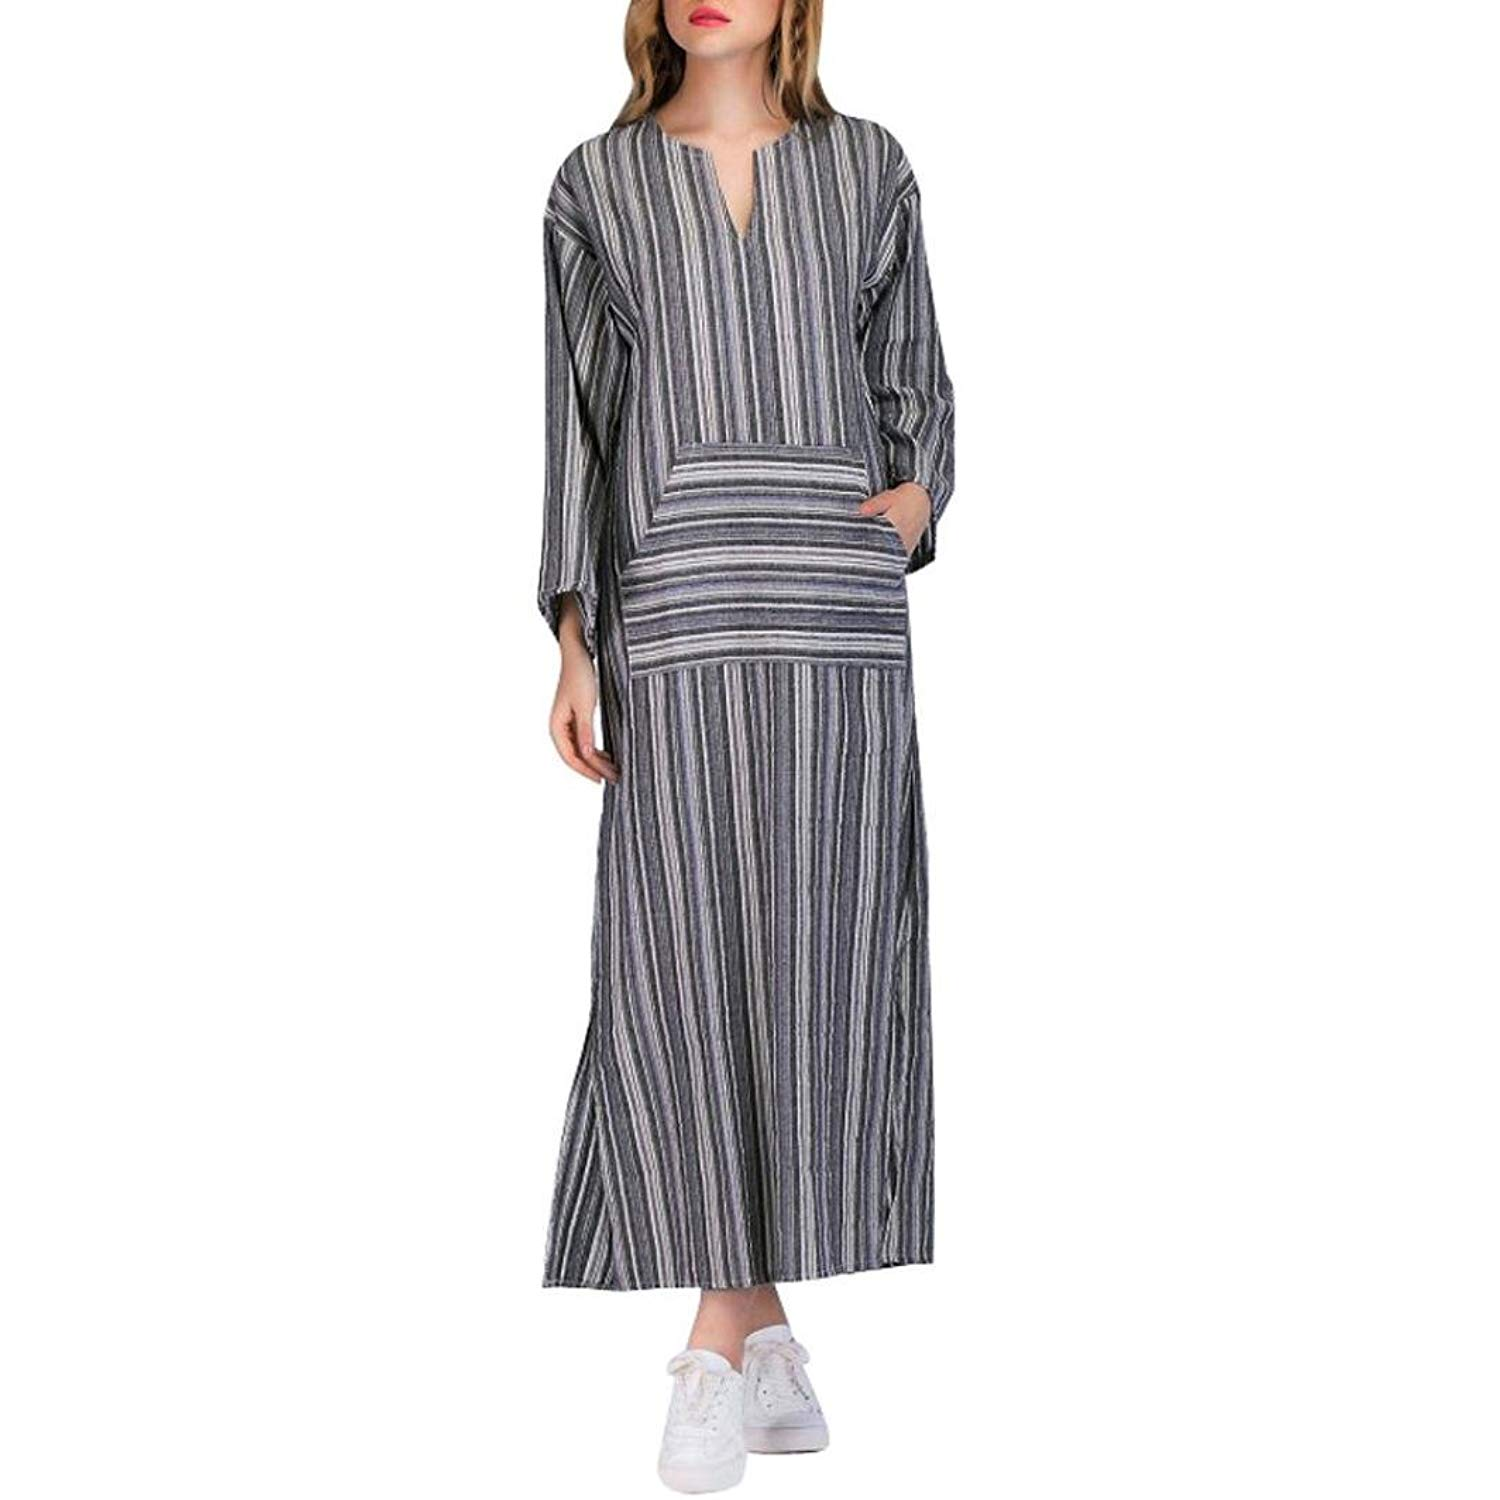 c2a313c5b267 Get Quotations · Kaftan Dress Ankola Plus Size Fashion Women Long Kaftan  Striped Long Sleeve Loose Maxi Dress